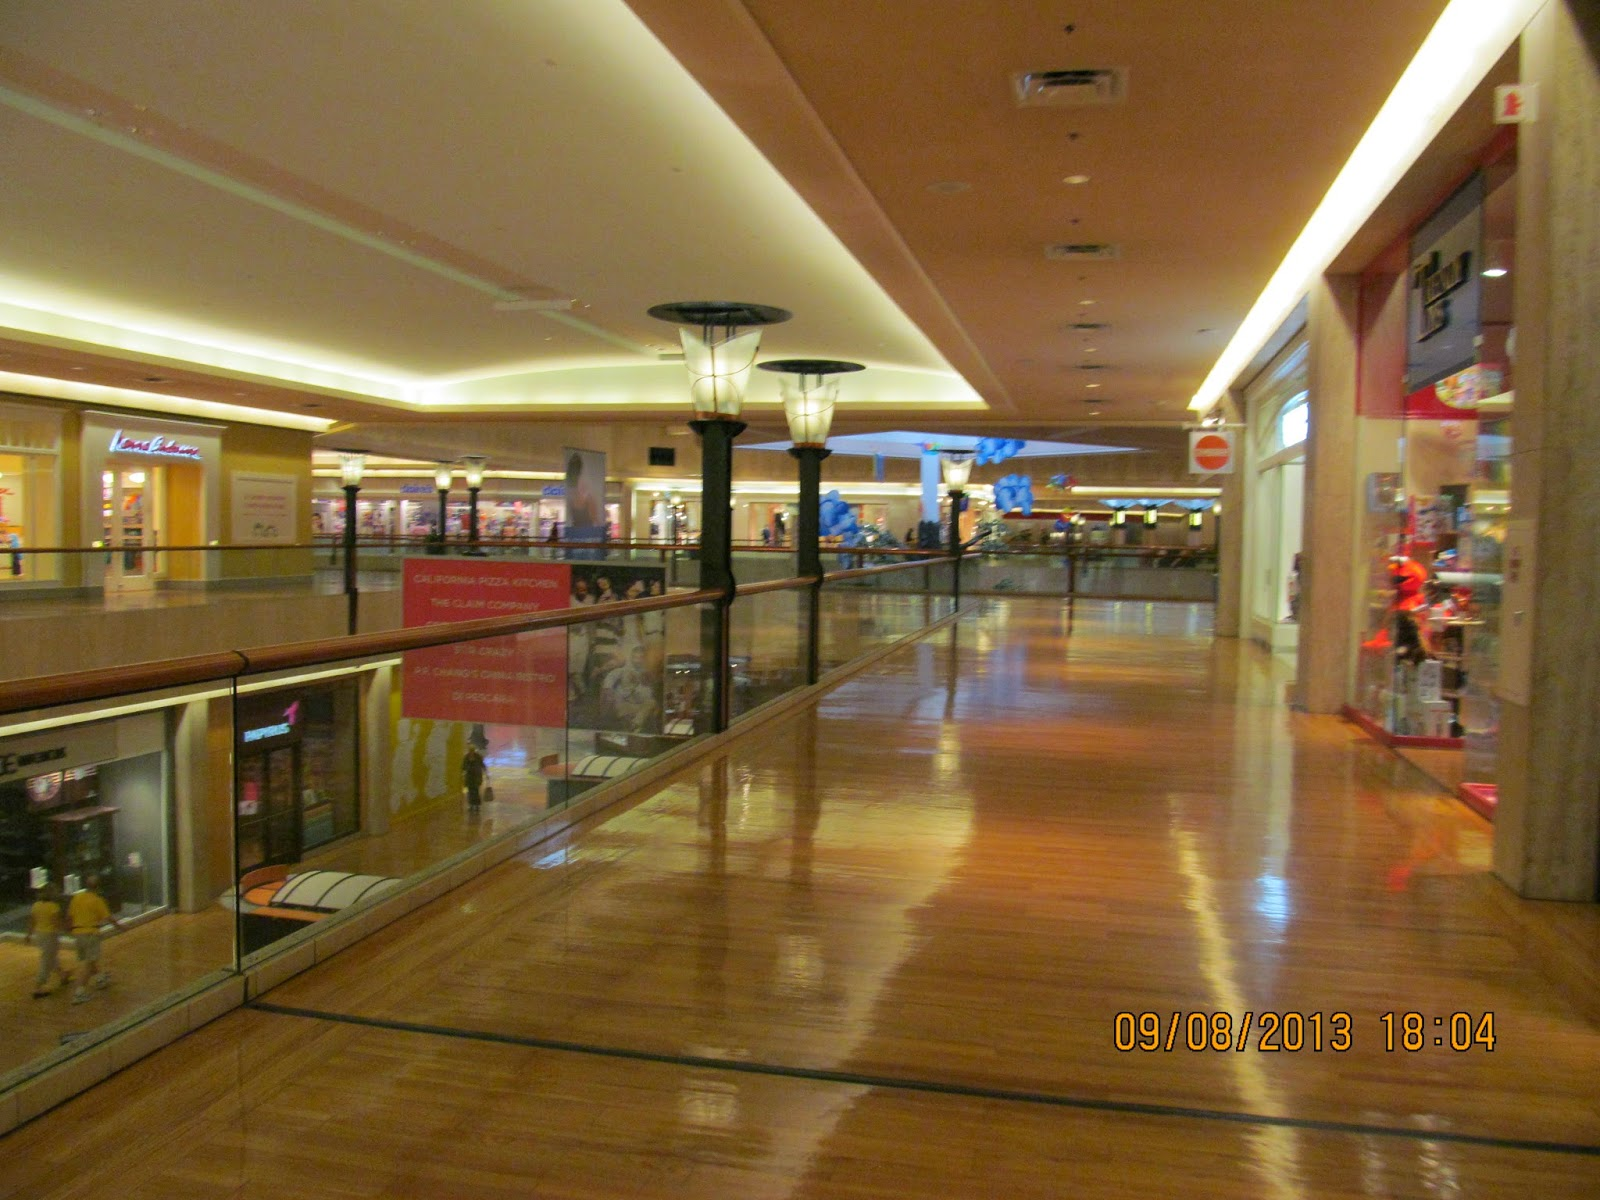 NORTHBROOK, IL — The new owners of Northbrook Court are proposing a major redevelopment of the year-old shopping mall. A preliminary proposal submitted to the Northbrook Village Board for review Tuesday would demolish the Macy's and completely renovate the interior of the mall.